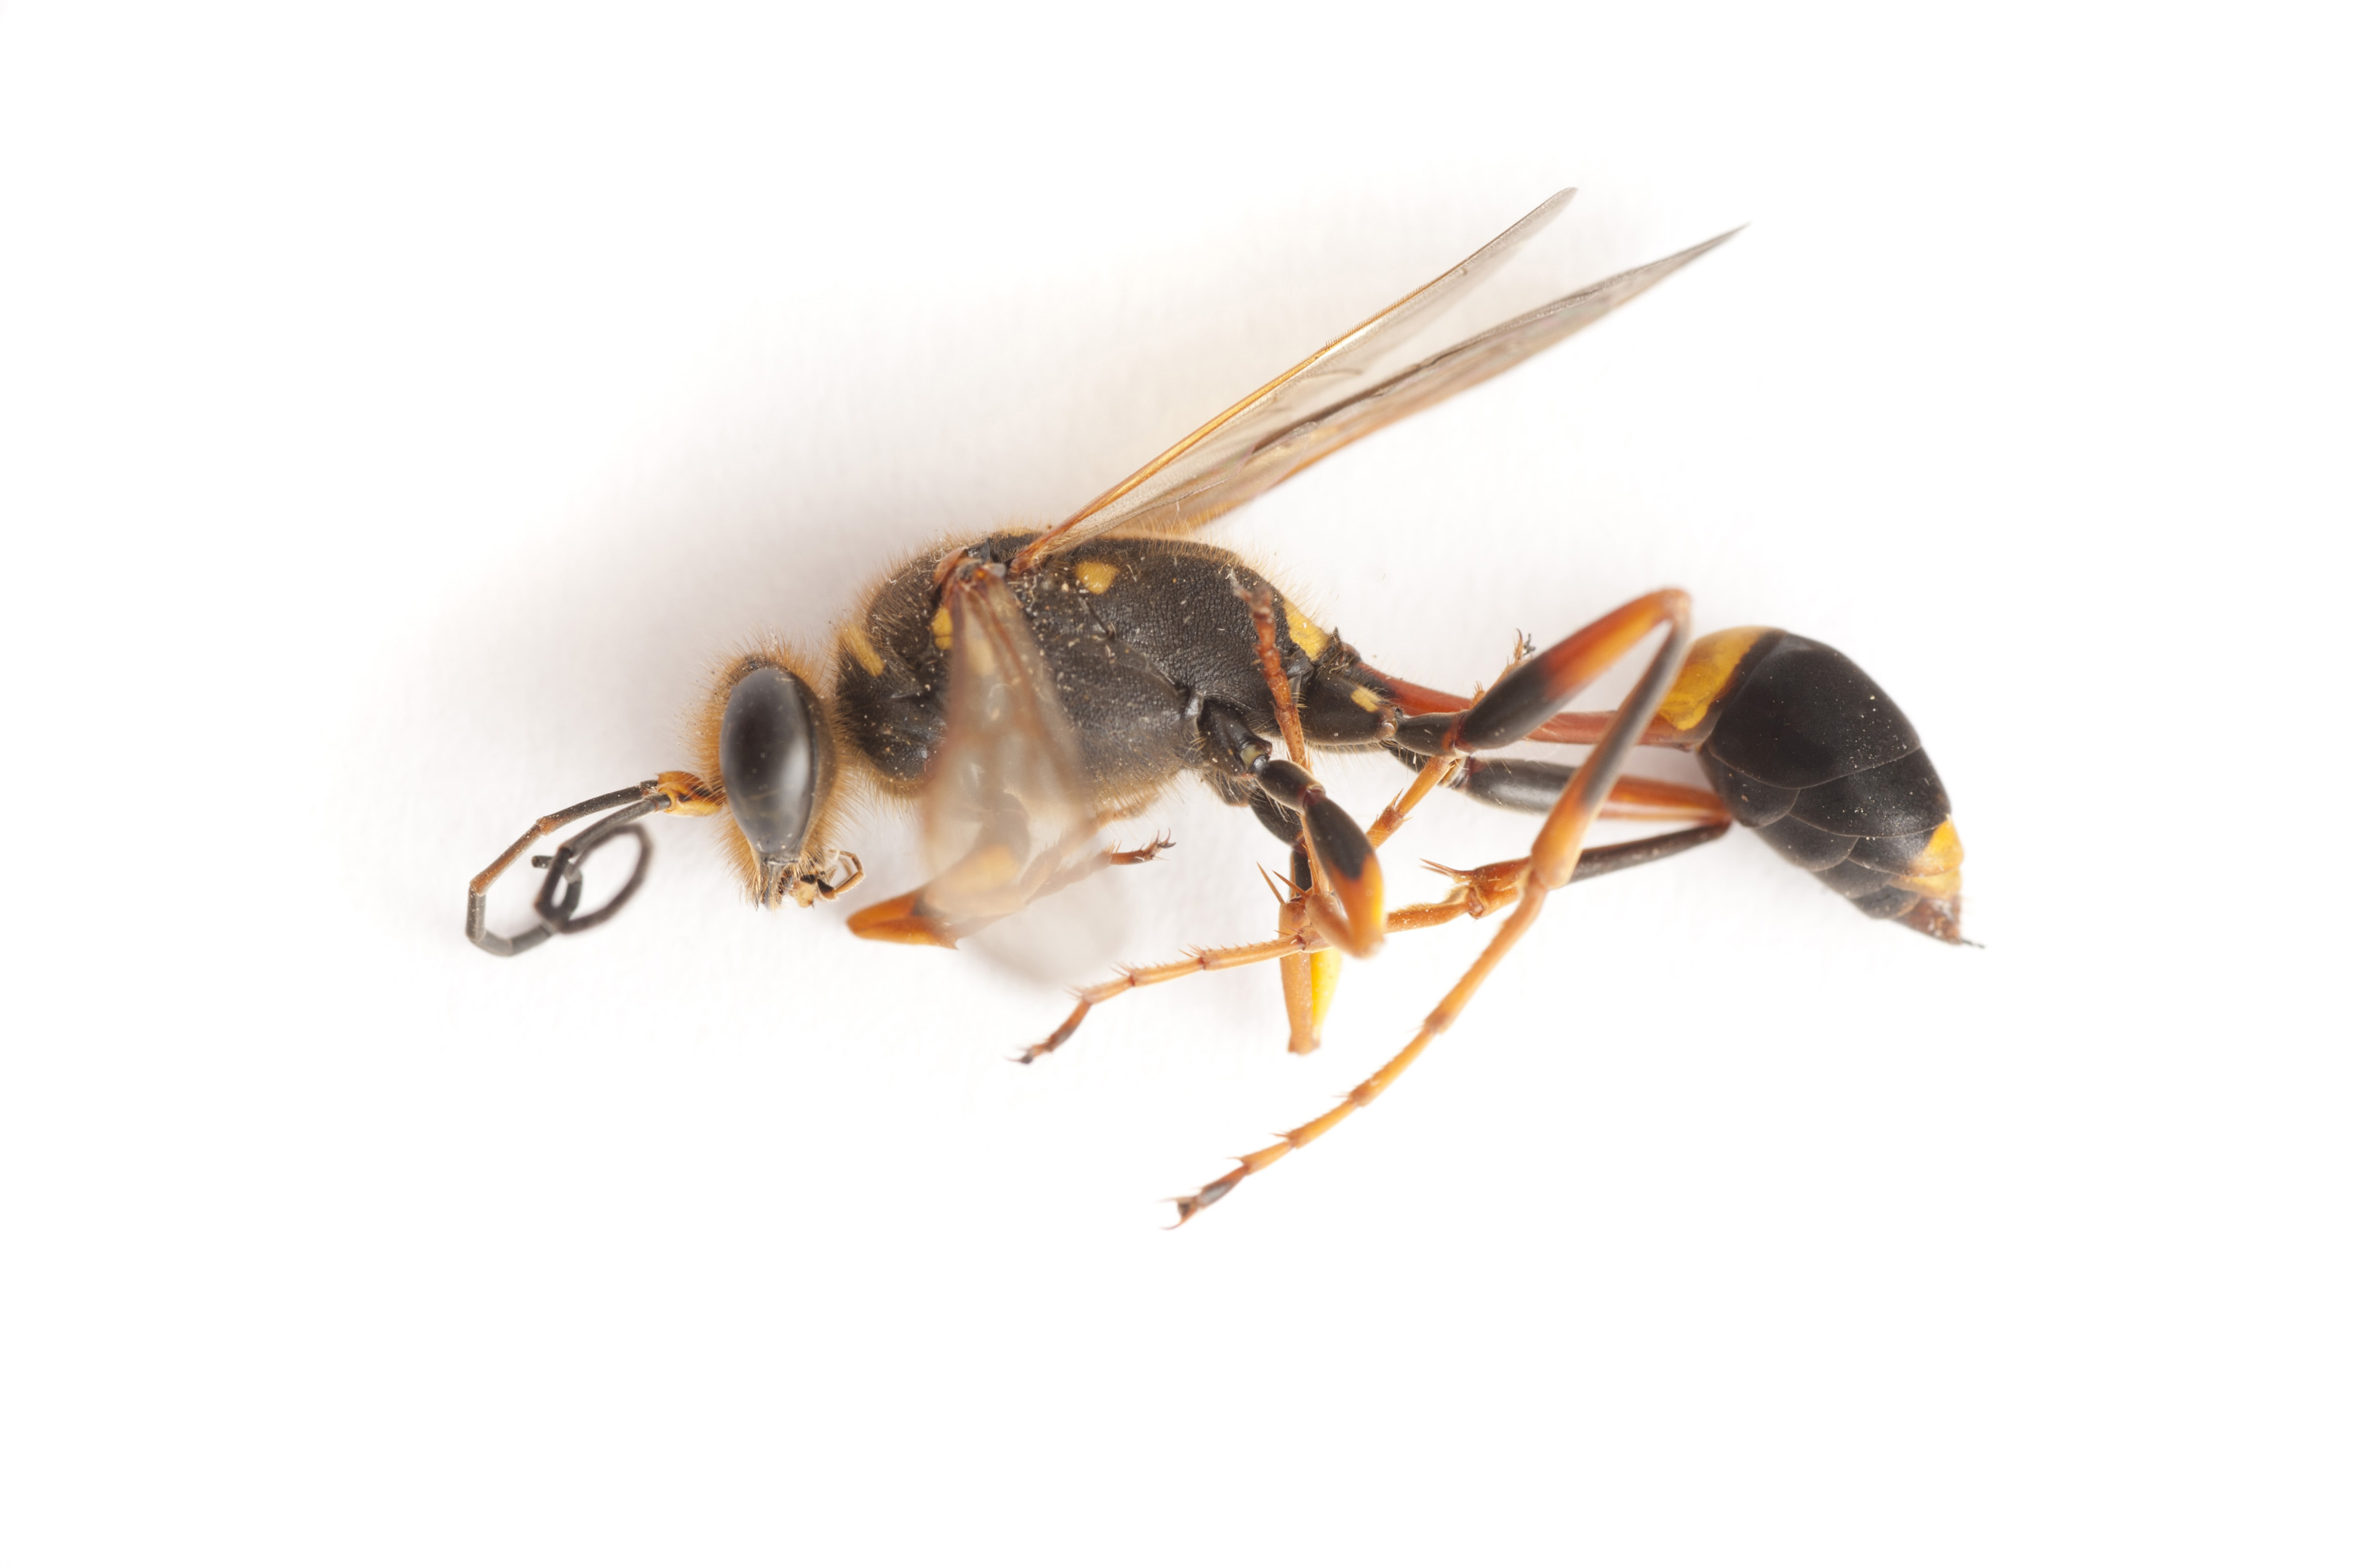 Close up side view of a dead wasp on white showing detail of the wings, thorax, legs and antennae